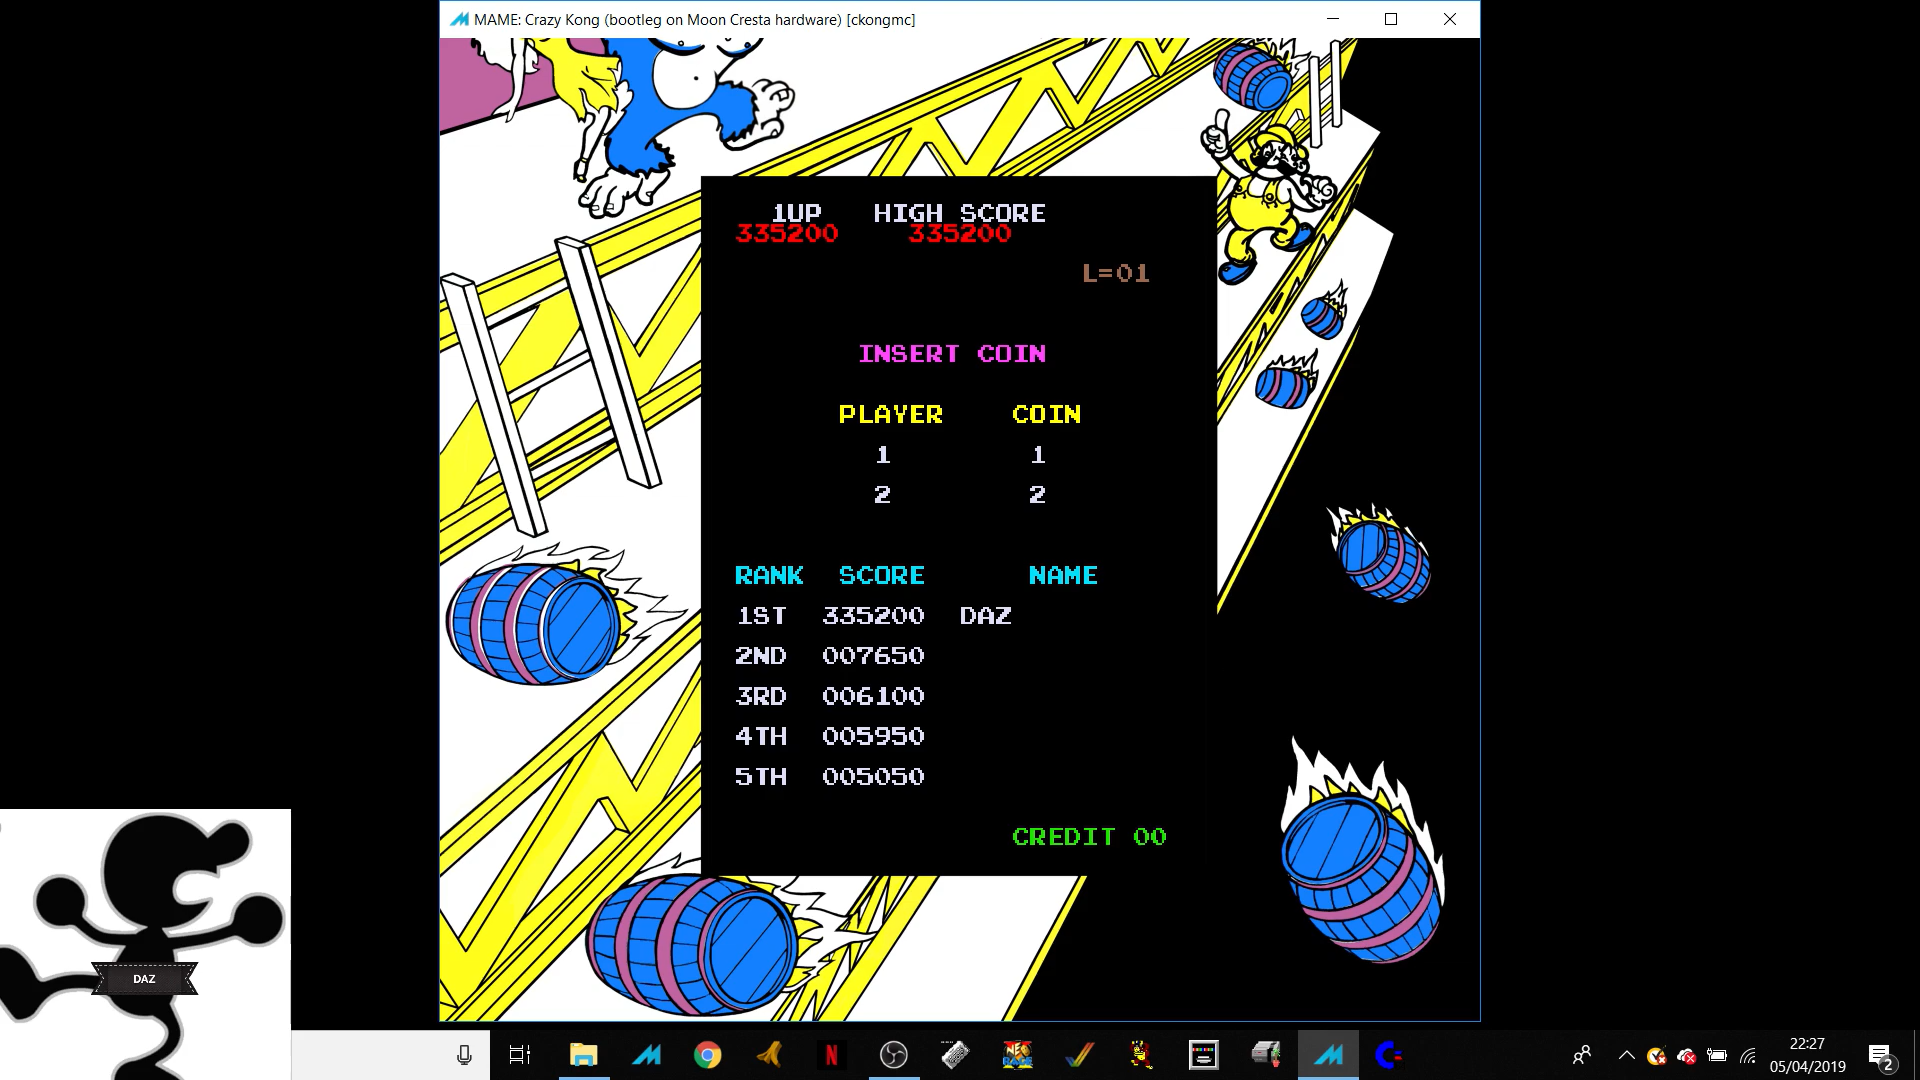 Ivanstorm1973: Crazy Kong [Moon Cresta Hardware] [ckongmc] (Arcade Emulated / M.A.M.E.) 335,200 points on 2019-05-19 05:01:25